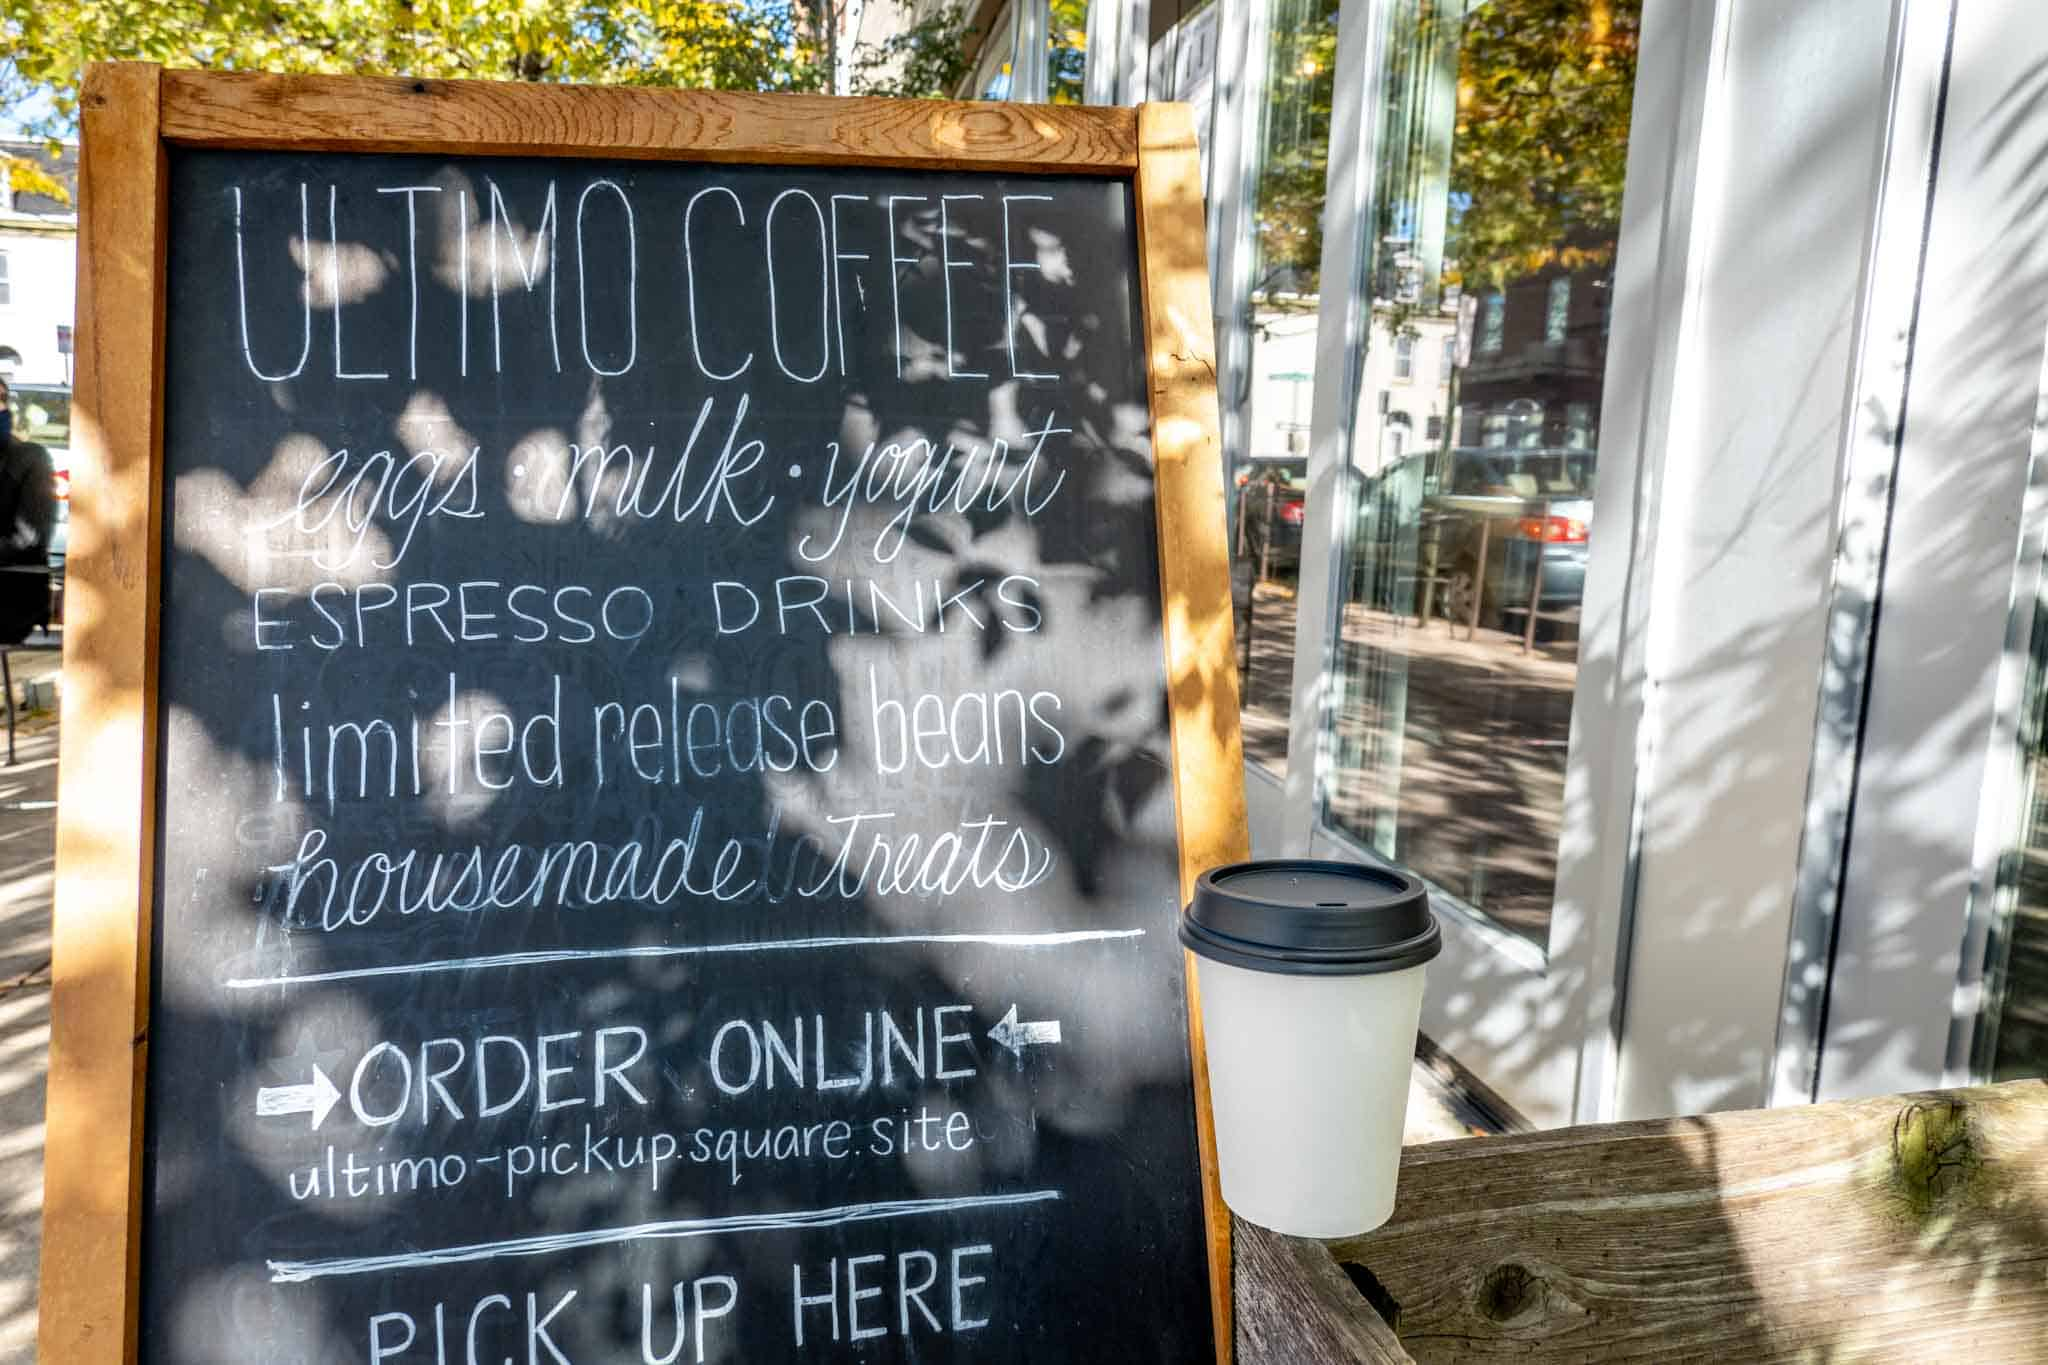 """Cup beside a sign: """"Ultimo Coffee: eggs, milk, yogurt, espresso drinks, limited release beans, homemade treats"""""""